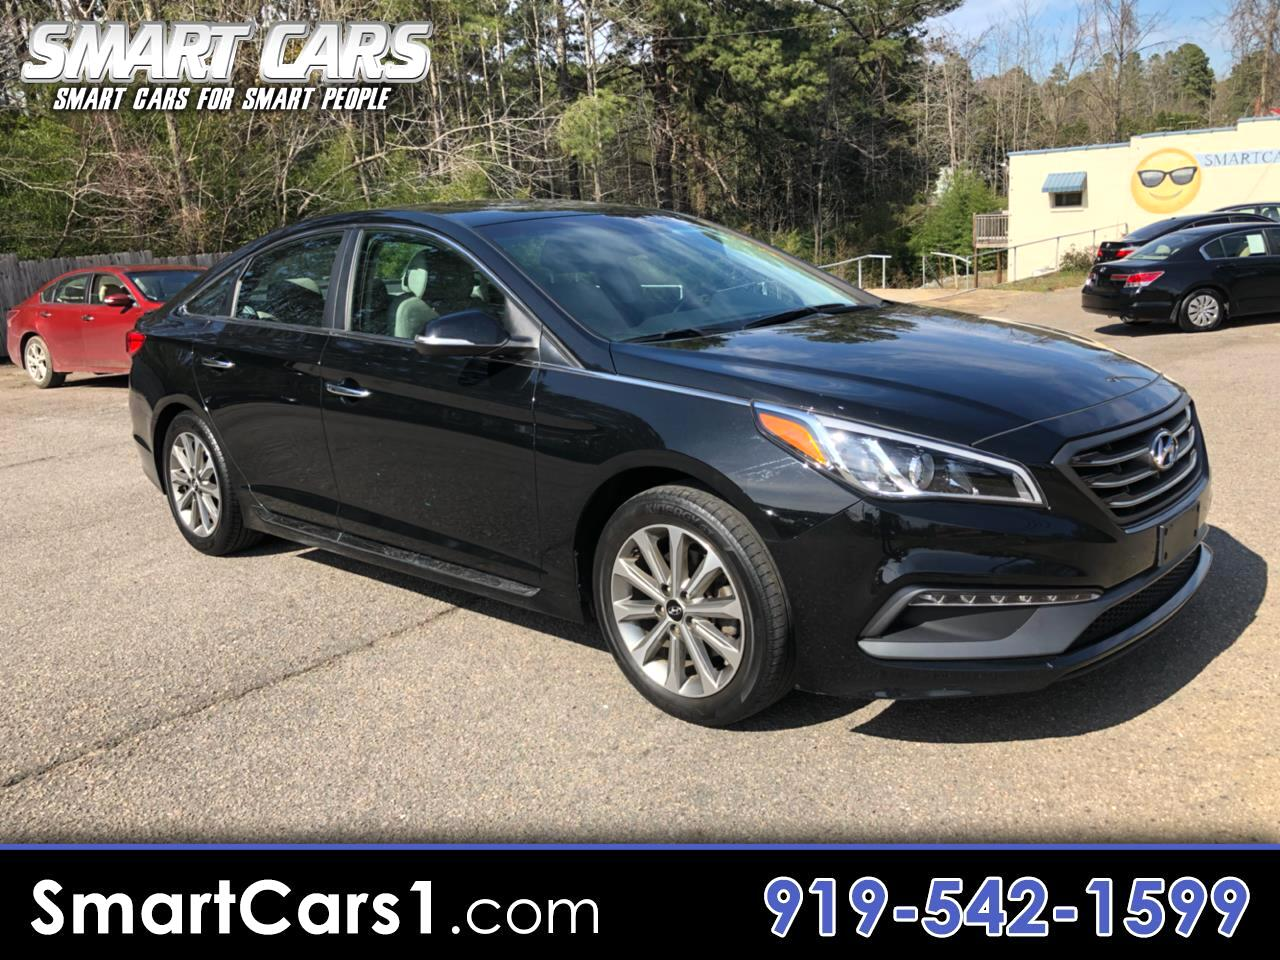 2016 Hyundai Sonata Limited 2.4L *Ltd Avail*